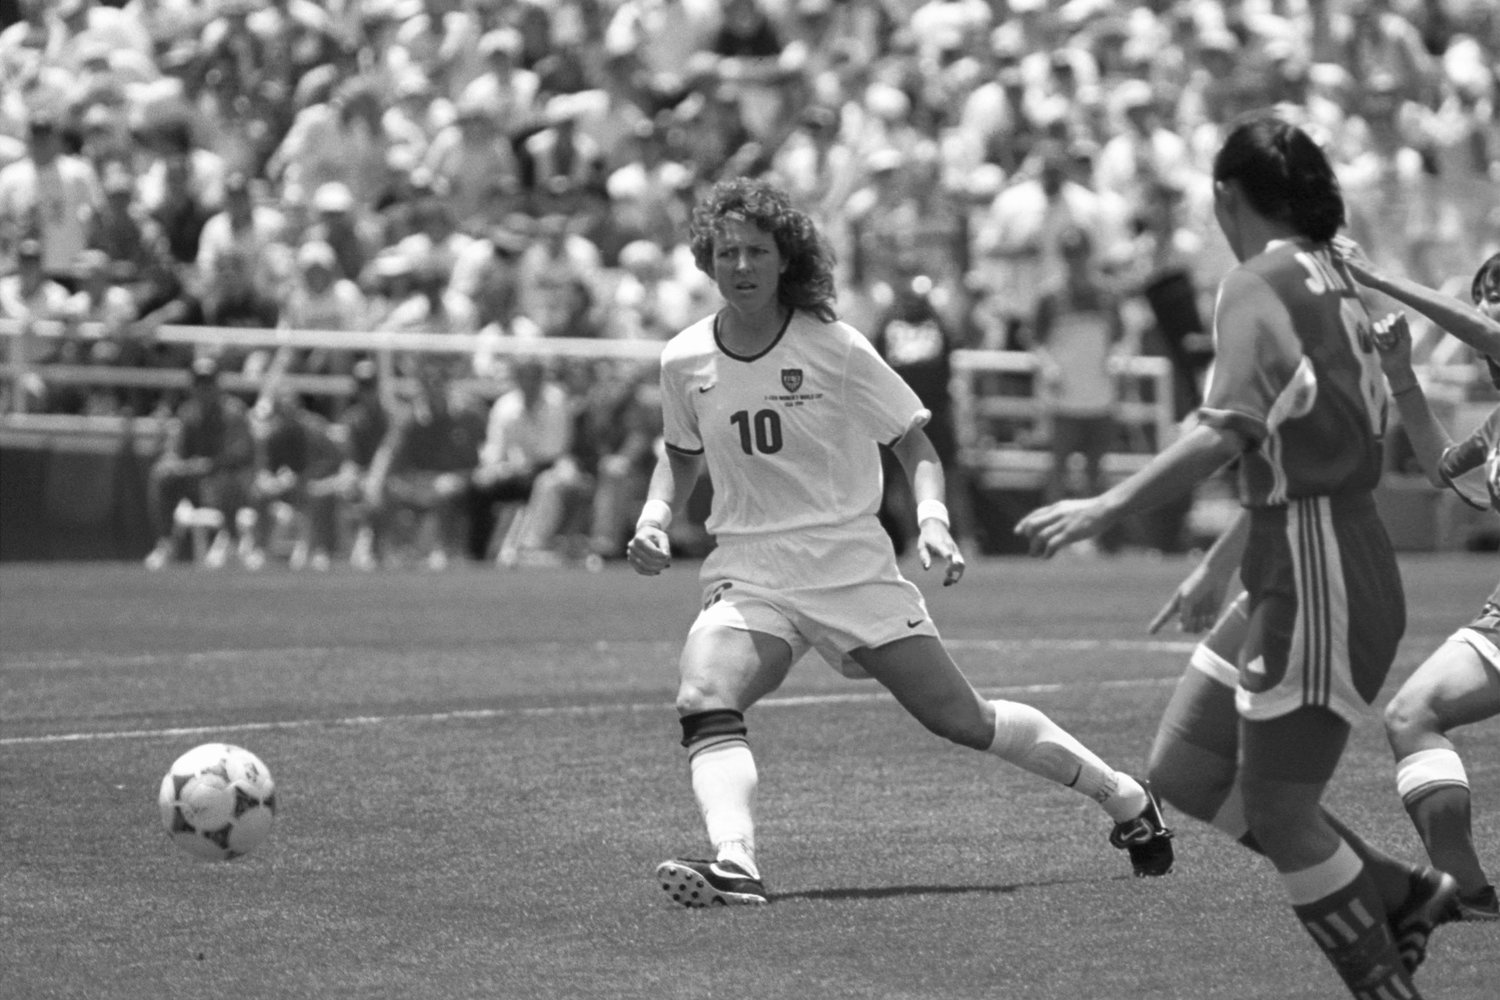 Michelle Akers in action at one of the United States Women's National Team games. As the first female global soccer star, Akers lent her unmatched heading skills and finishing touches to 2 FIFA Women's World Cup Championships (1991, 1999) and the Olympics (1996).